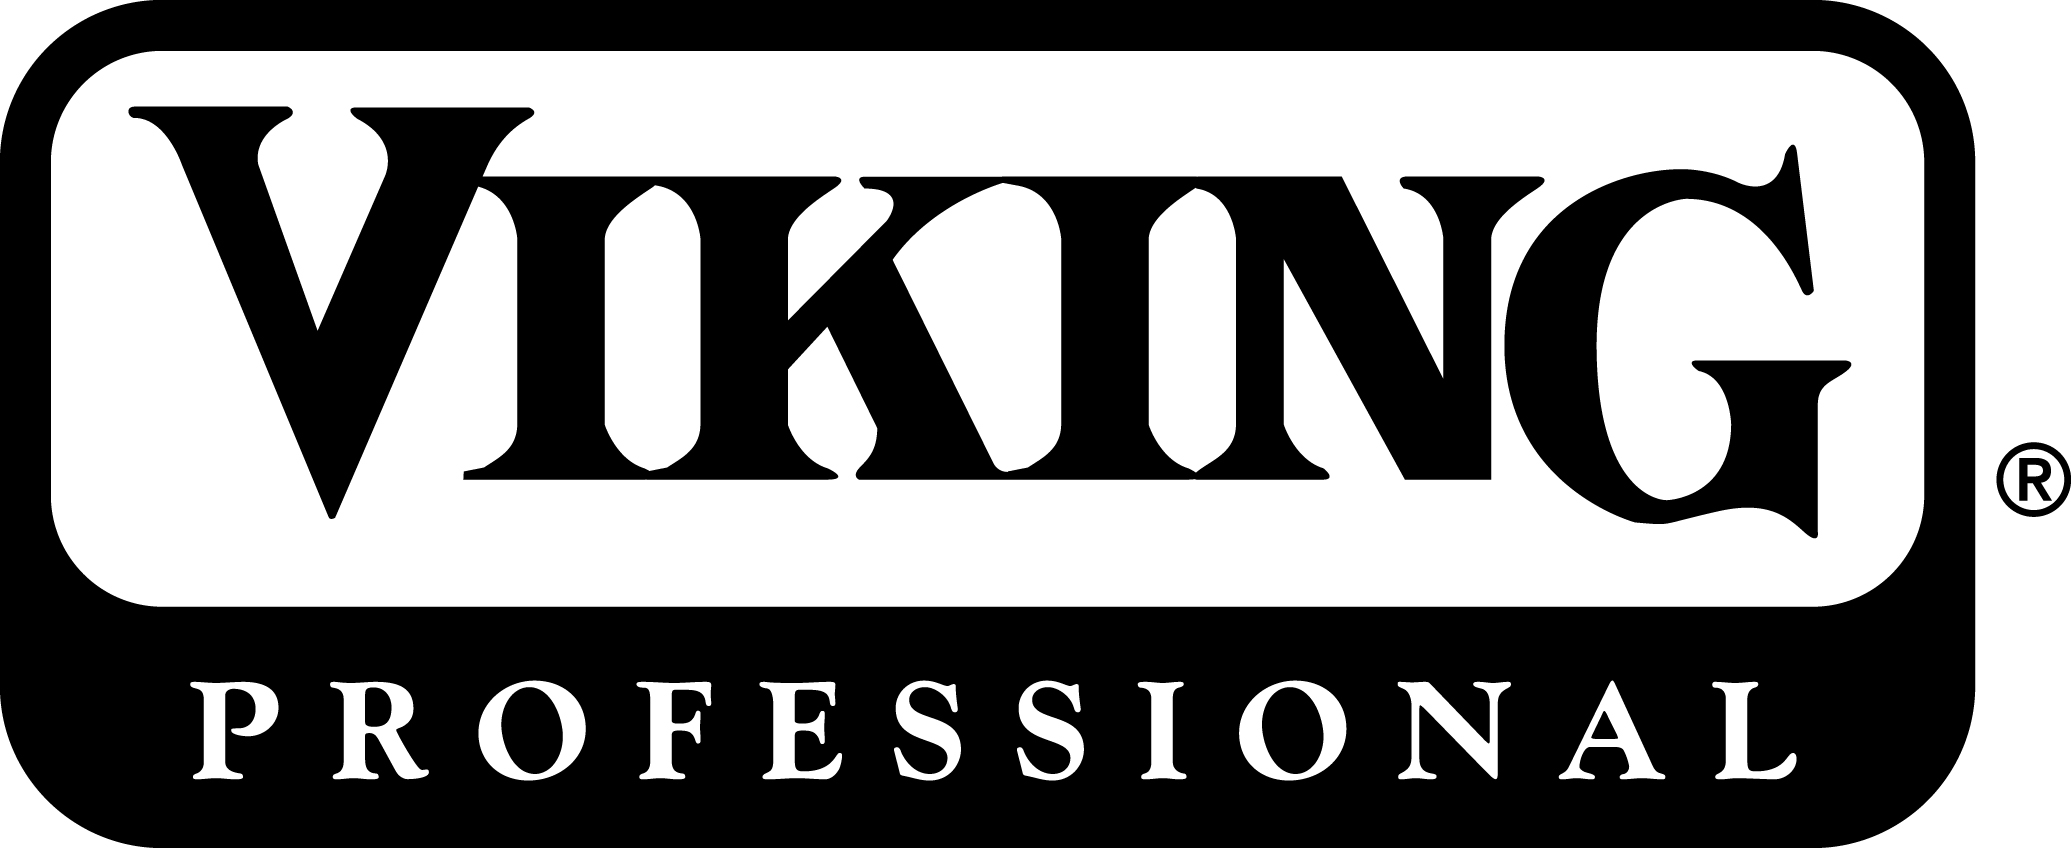 Viking Oven Fixer Near Me, Kenmore Oven Repair